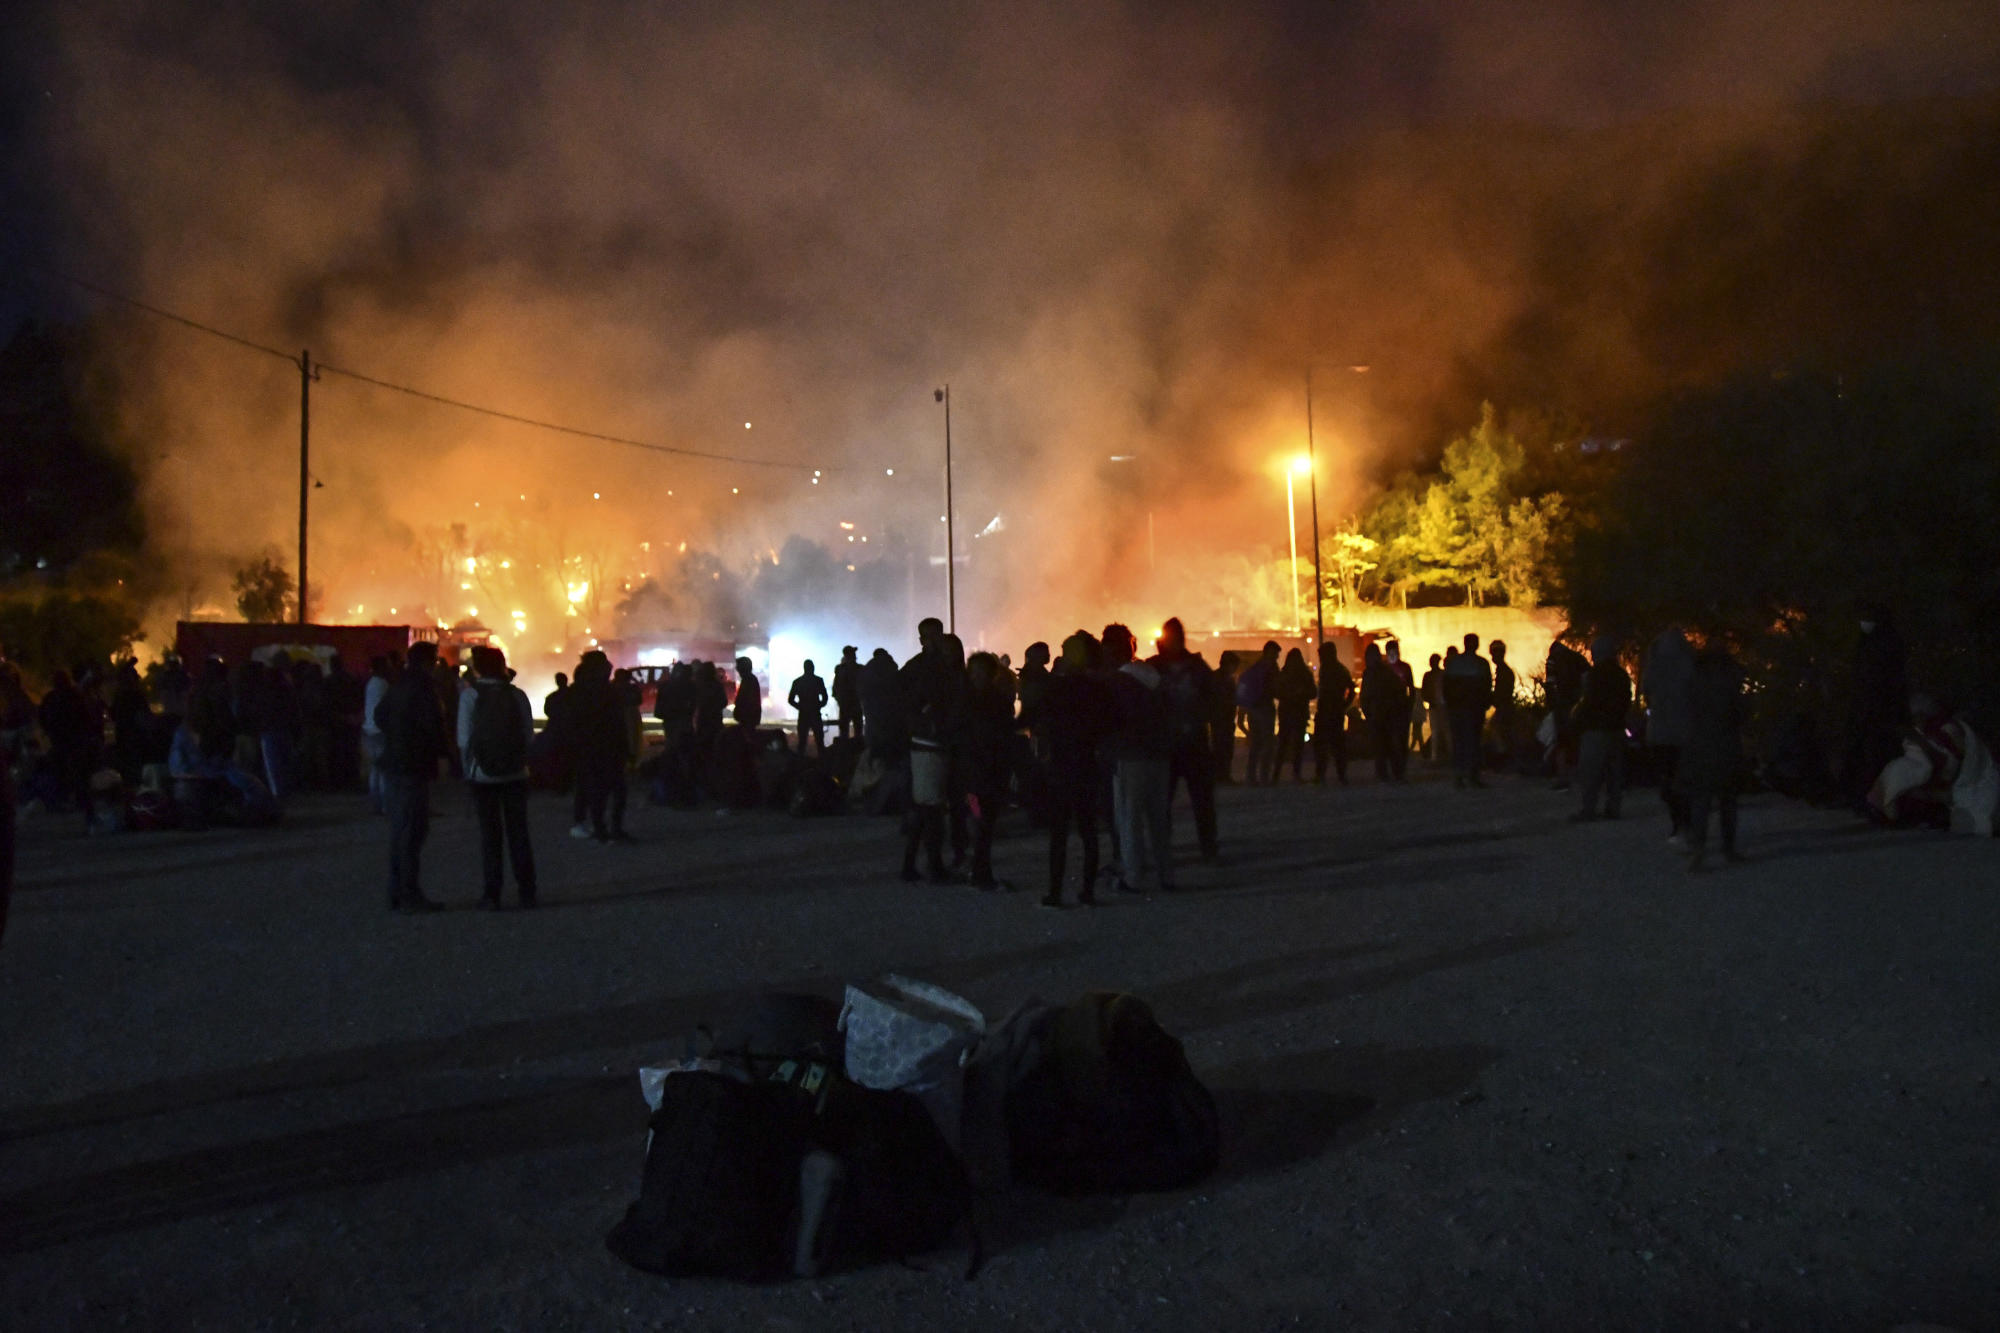 Small fire burns tents in squalid Greek island refugee camp